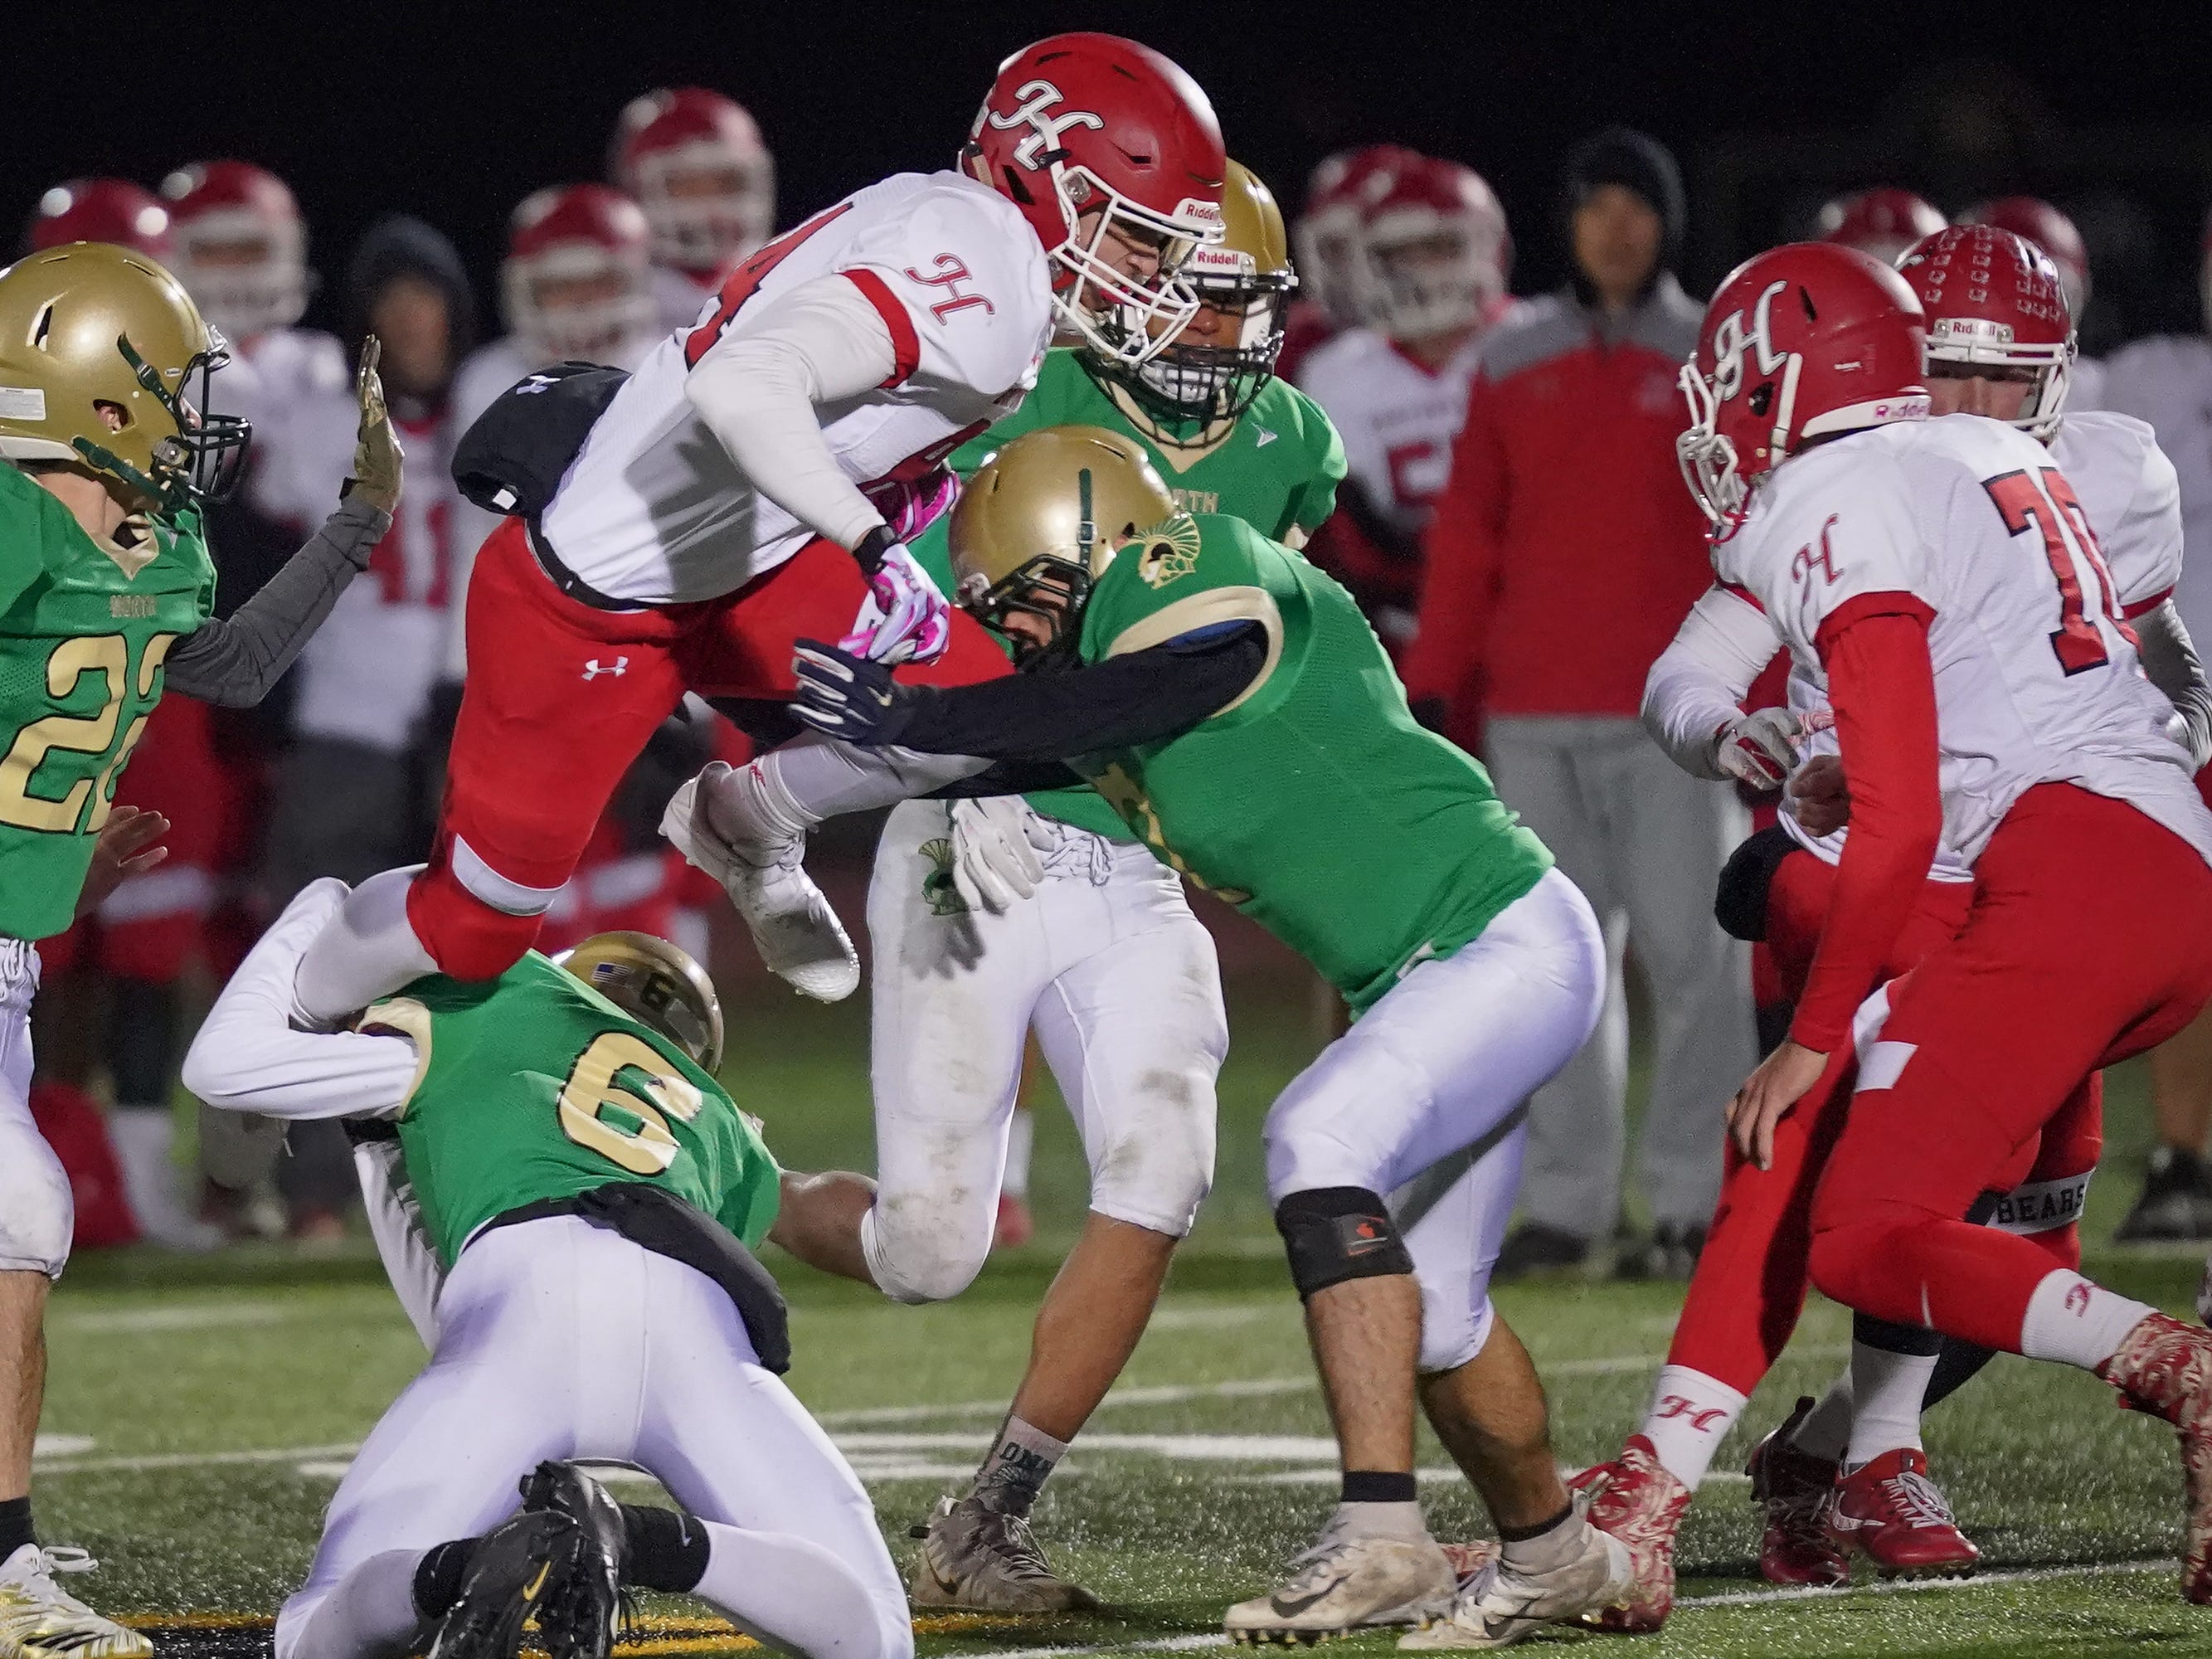 Josh Giese (84) of Hortonville goes up and over the pile for a gain. The Oshkosh North Spartans hosted the Hortonville Polar Bears in an FVA-South conference matchup Friday evening, October 12, 2018 at J. J. Keller Field at Titan Stadium.